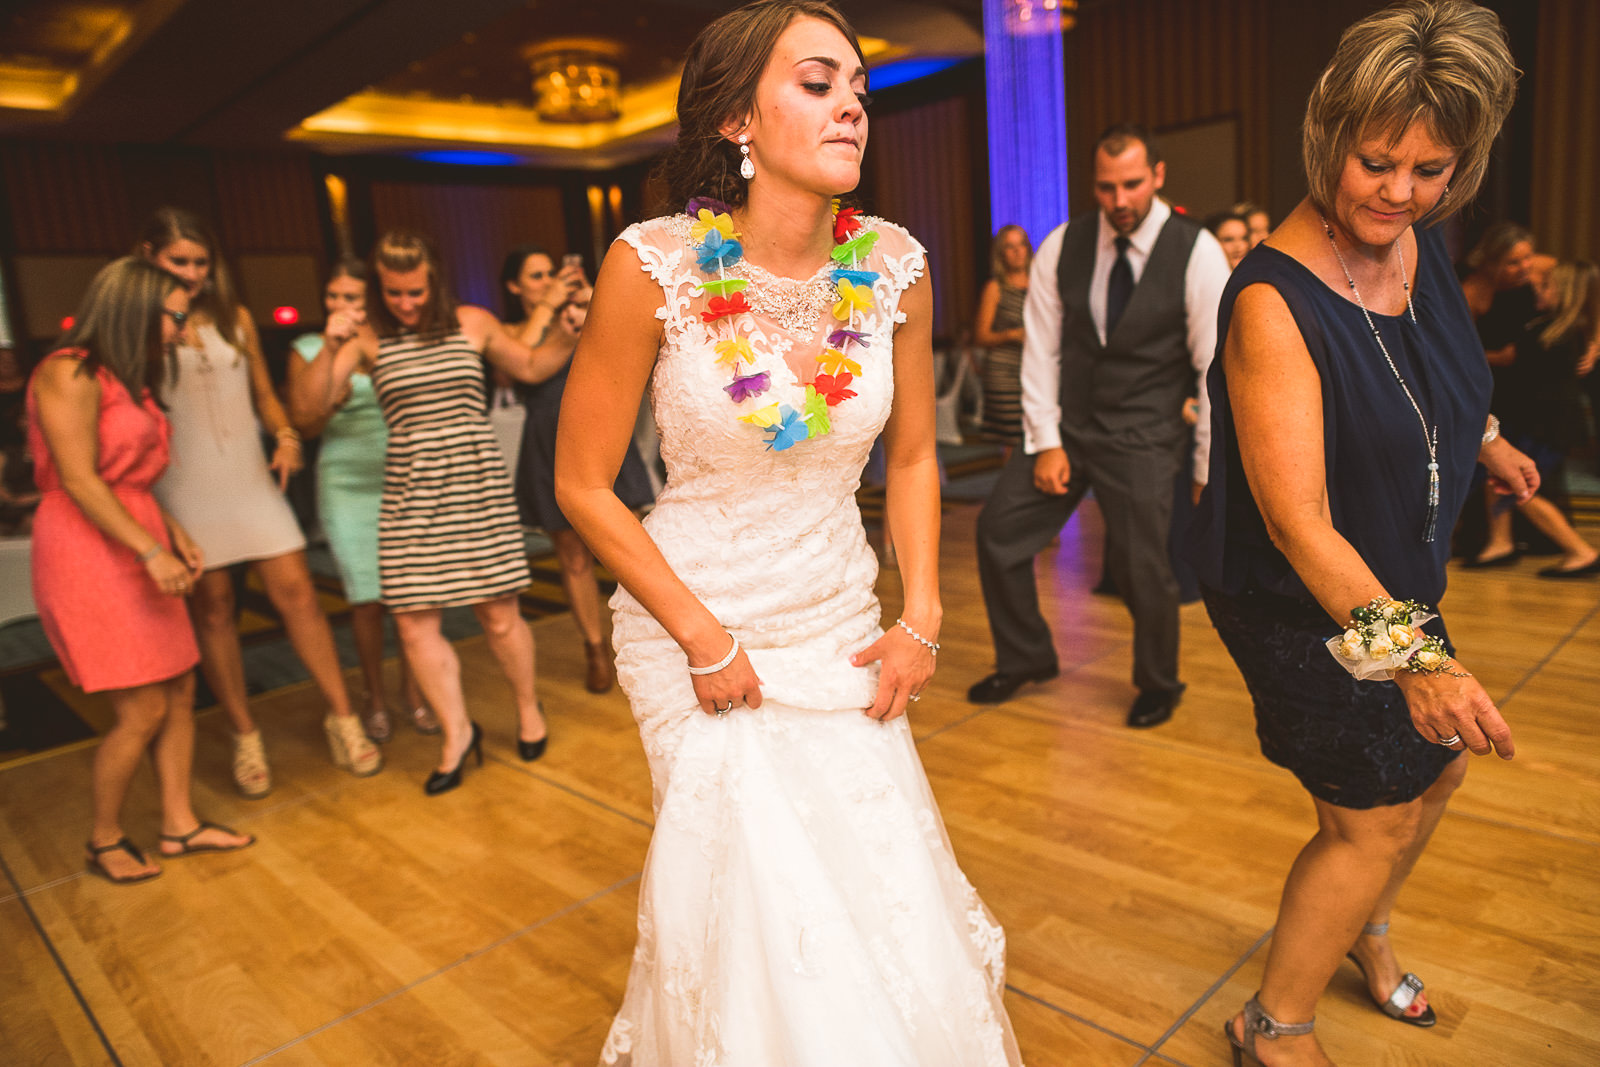 60 bride dancing - Brittany + Jeff // Indiana Wedding Photogrpahy